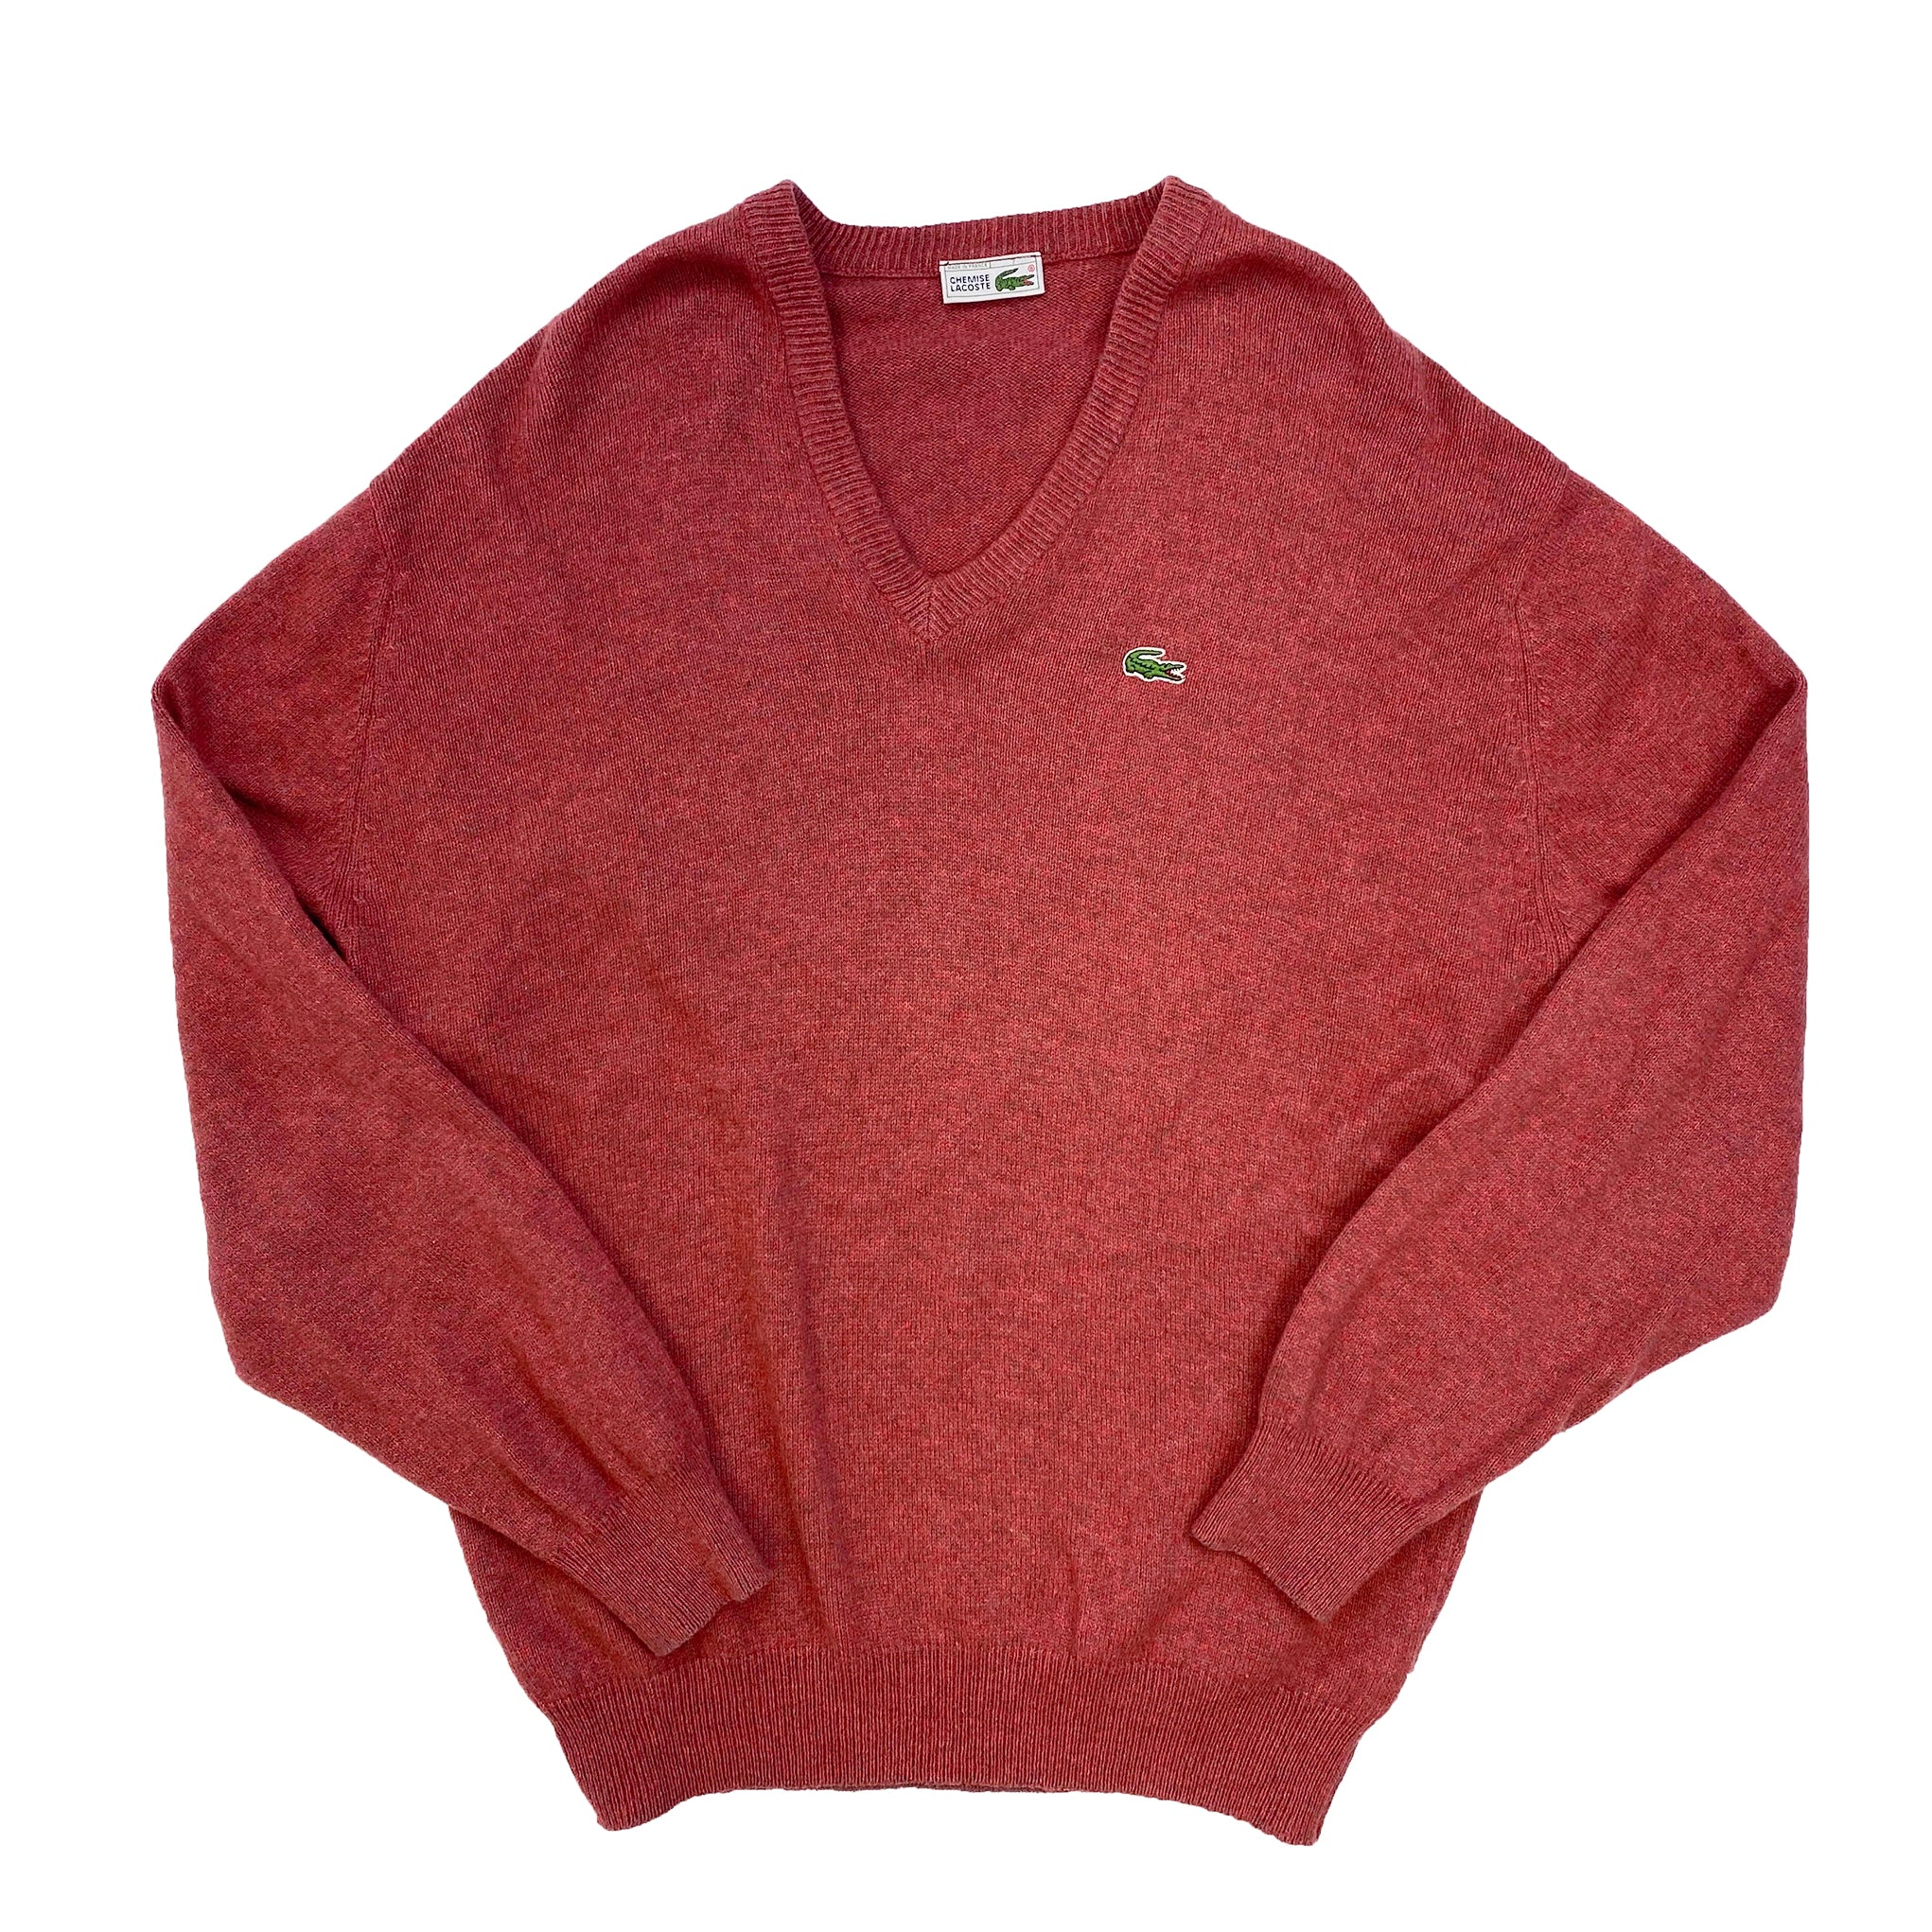 Chemise Lacoste Coral Red Wool Knitted Vintage Jumper